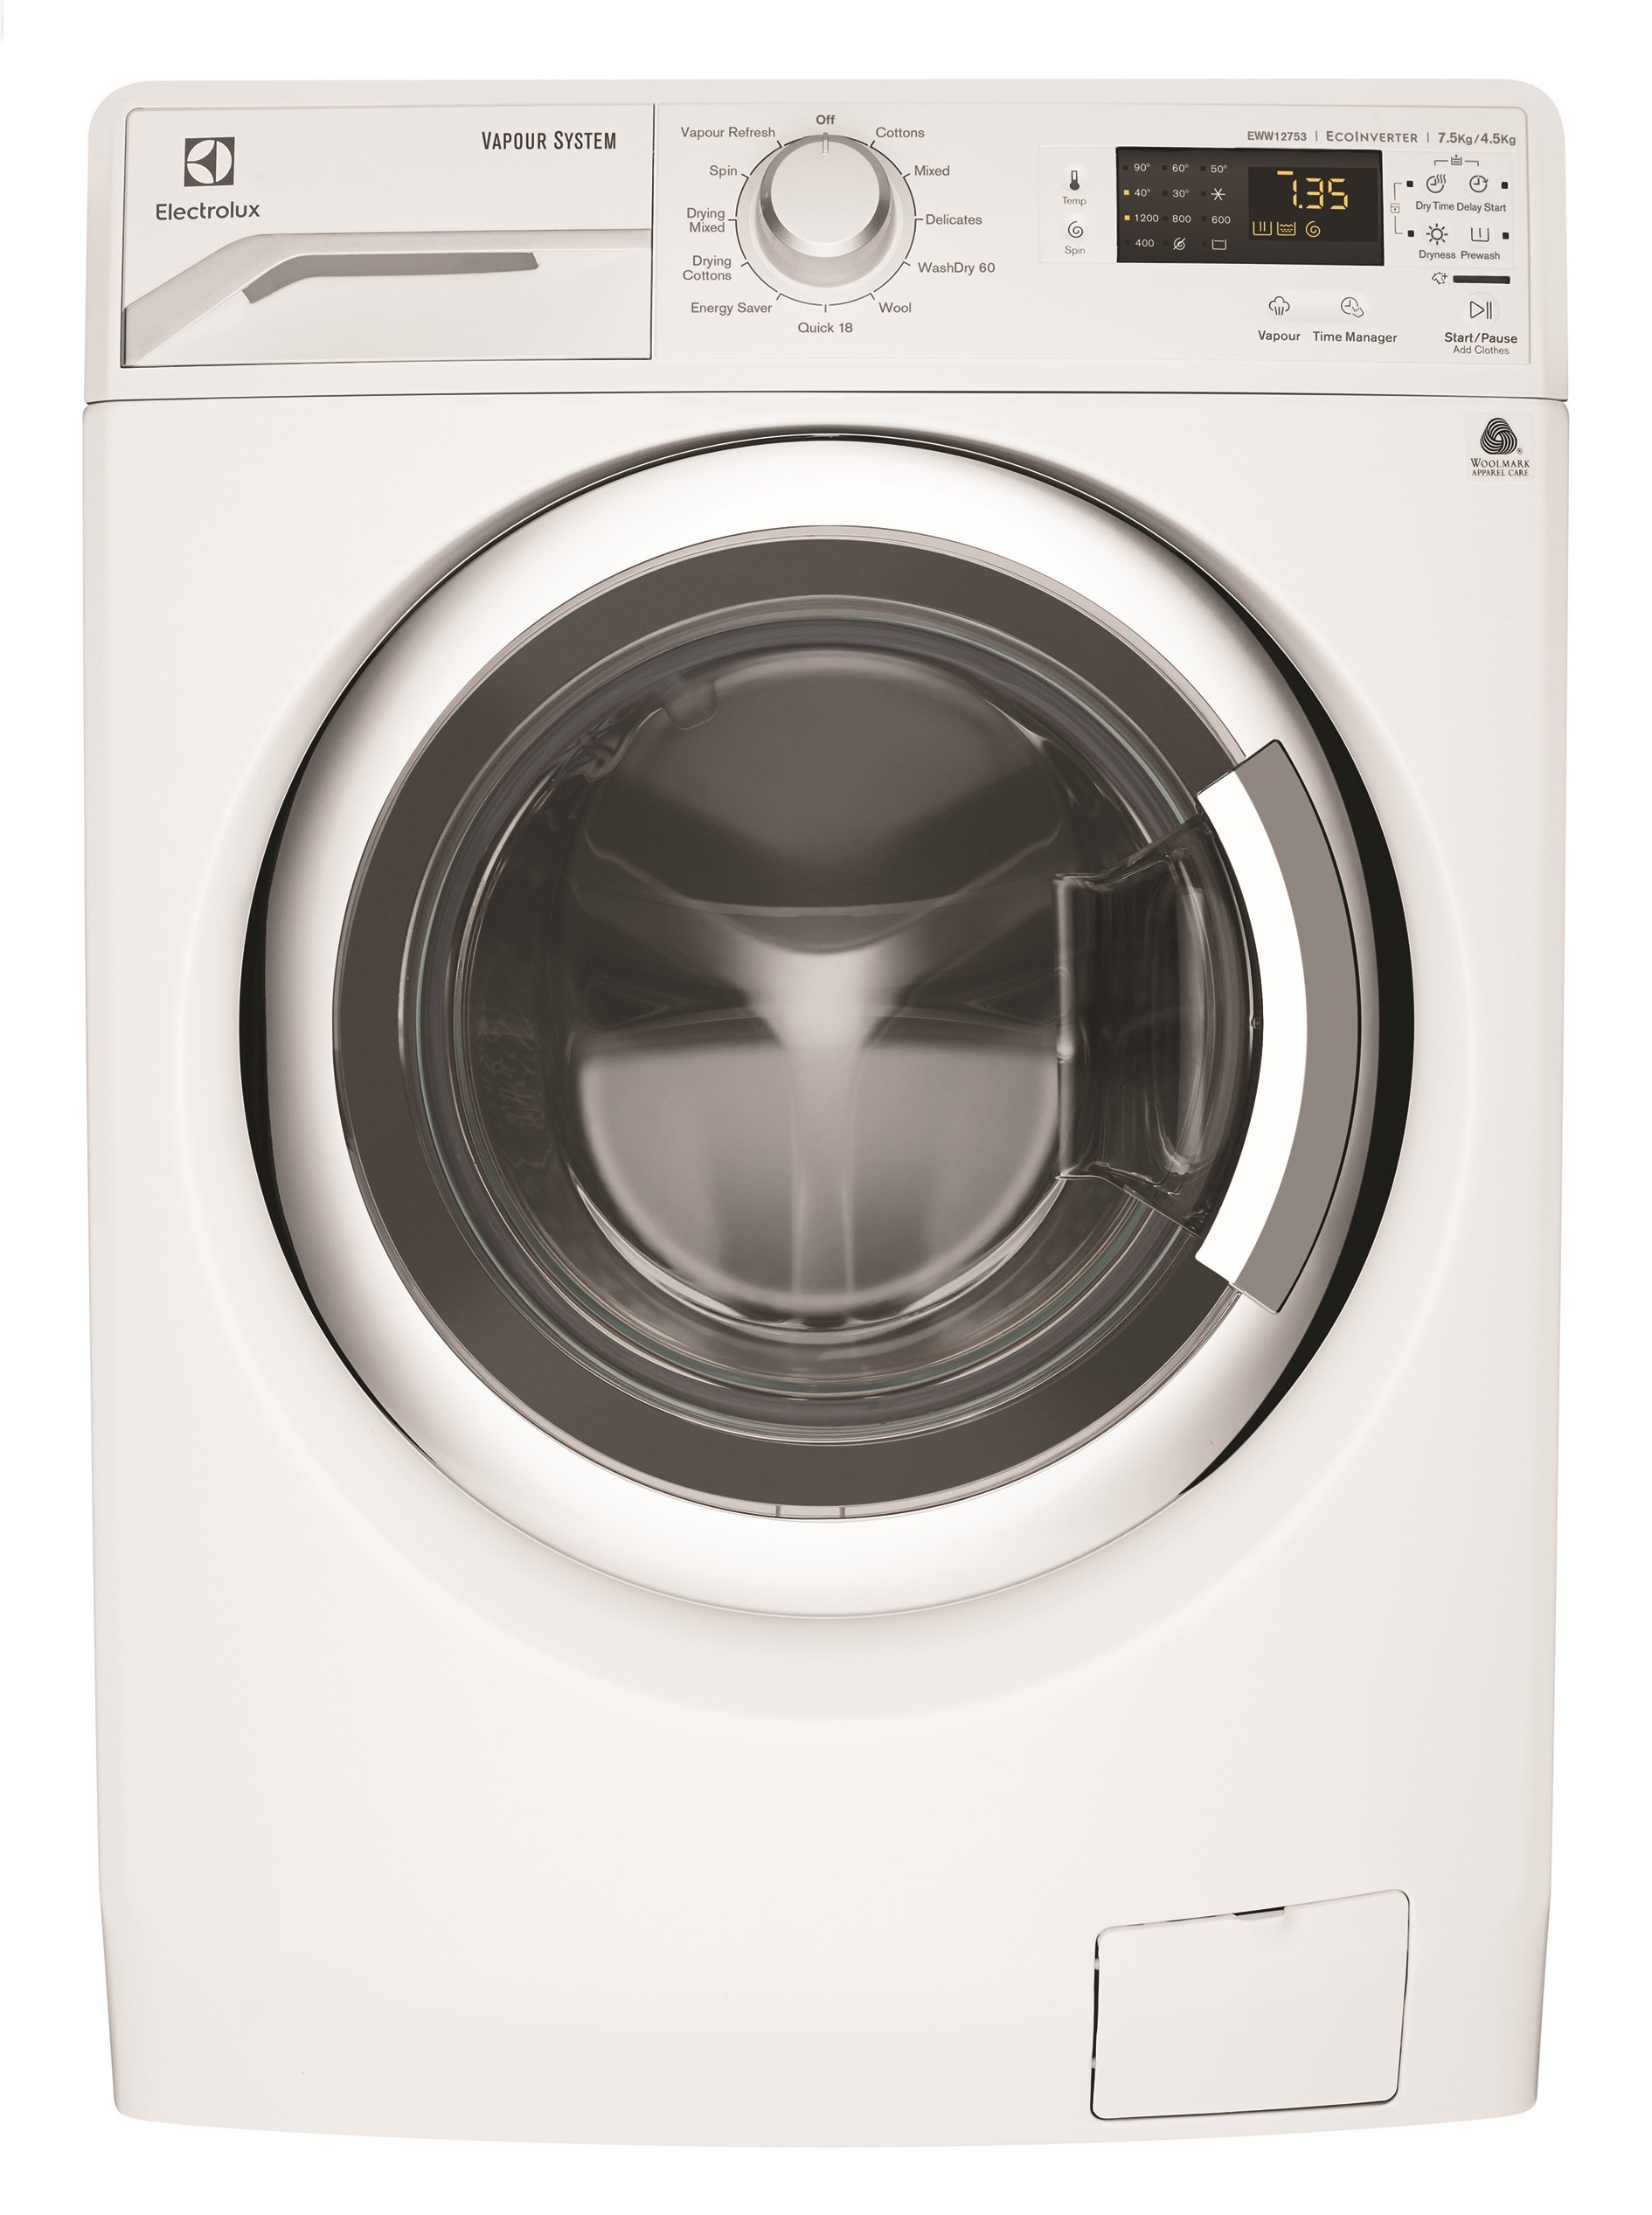 NEW Electrolux EWW12753 7.5kg Washer 4.5kg Dryer Combo | eBay